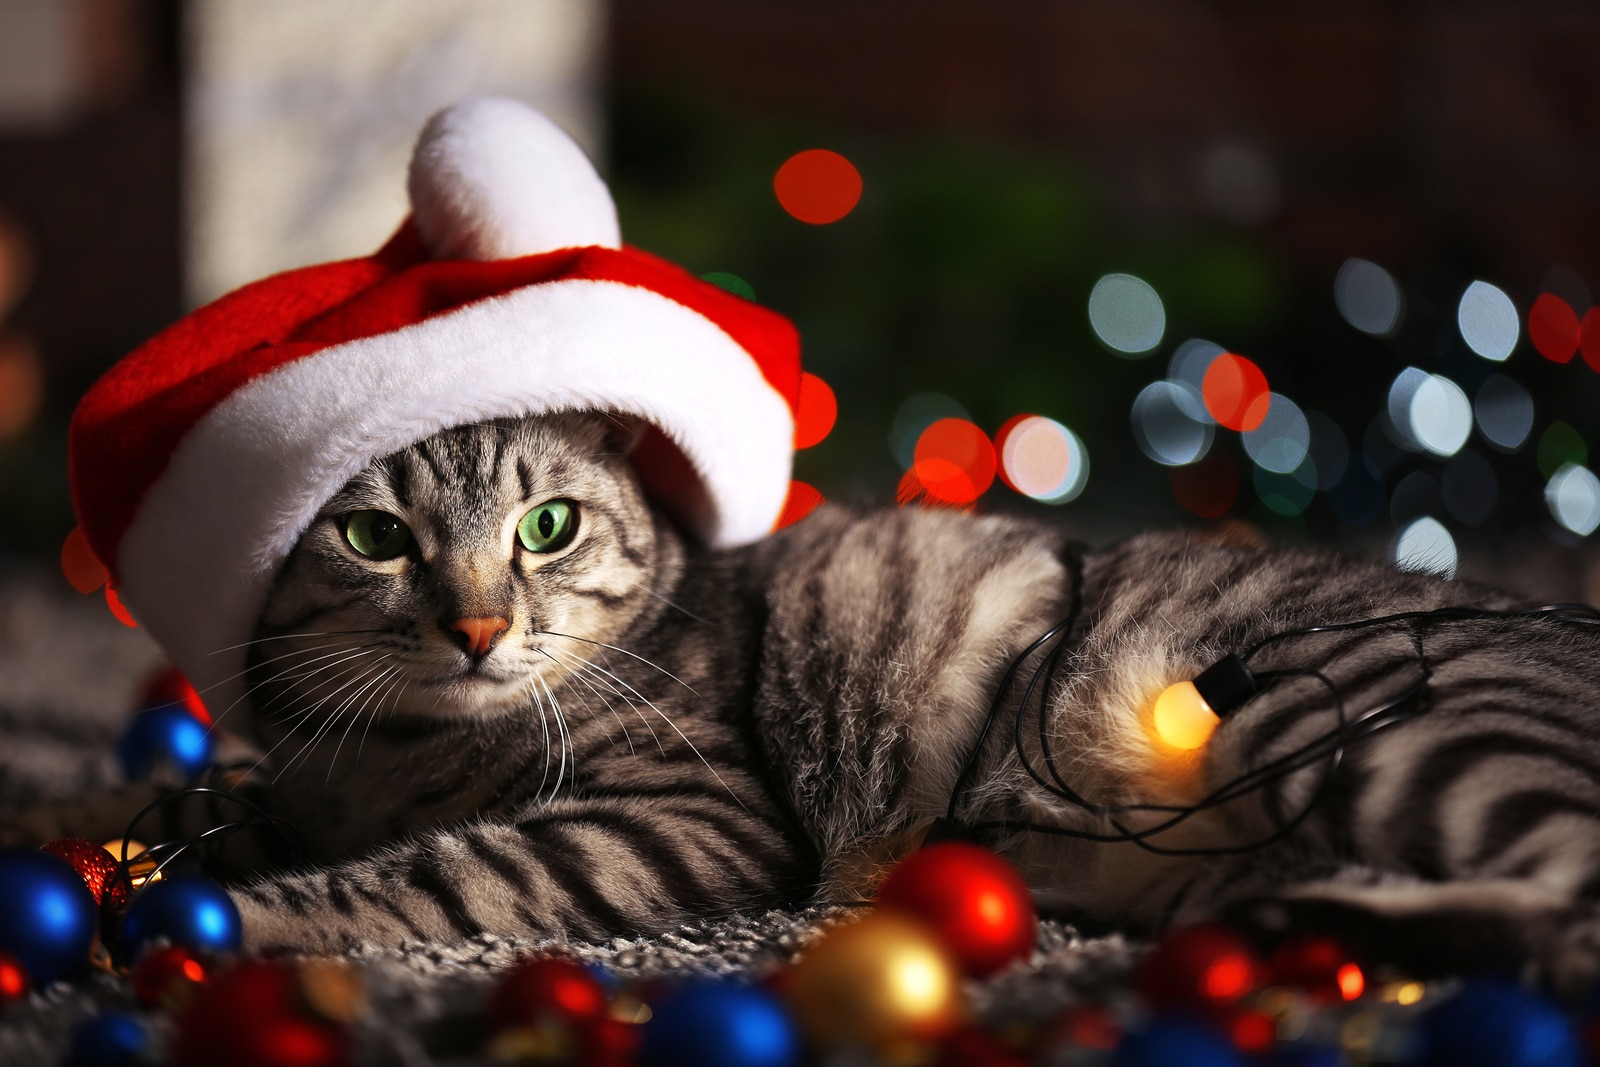 Gray and black striped tabby with Santa hat on lies in middle of Christmas lights.